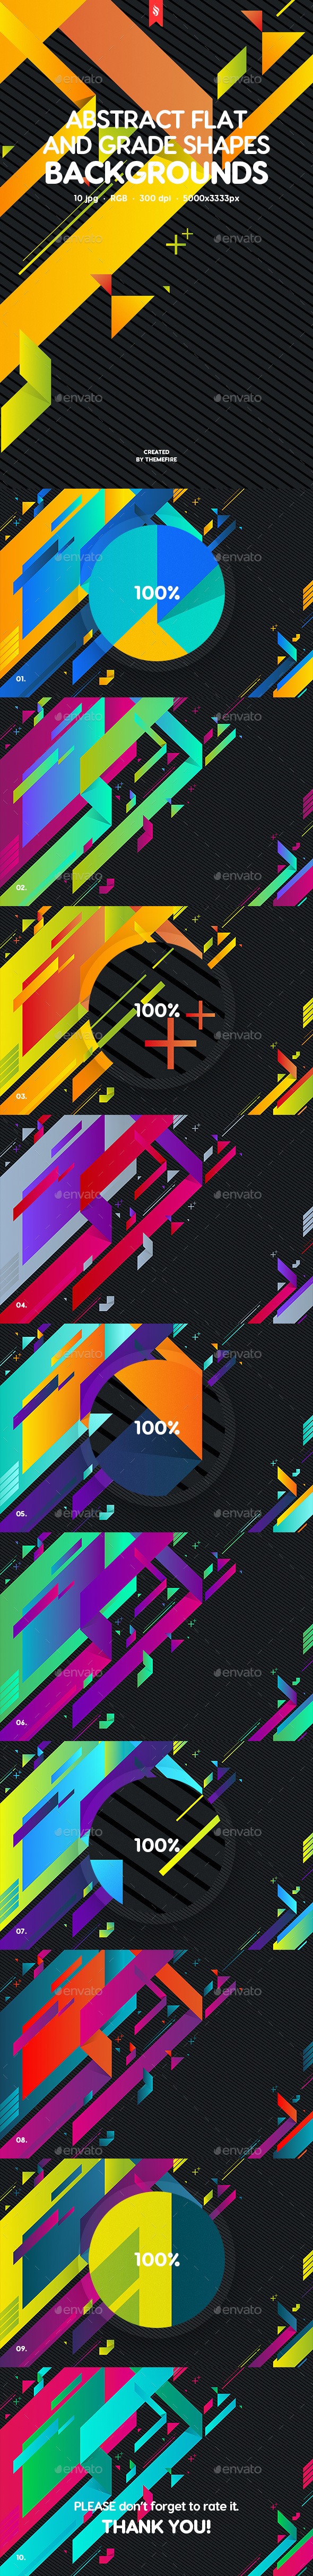 GraphicRiver Abstract Flat and Grade Shapes Backgrounds 20397573